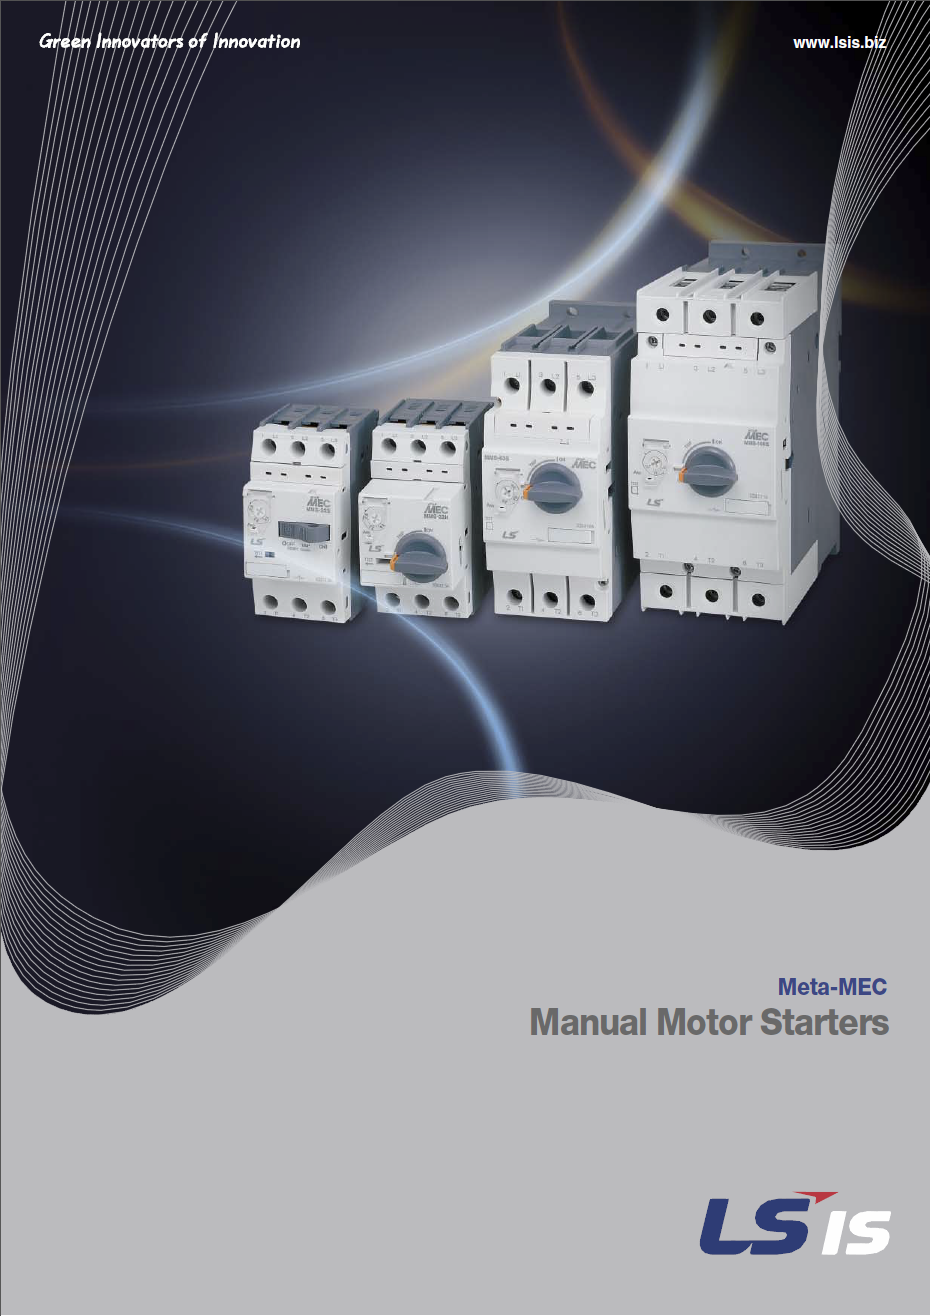 Manual Motor Starters Catalogue Cover